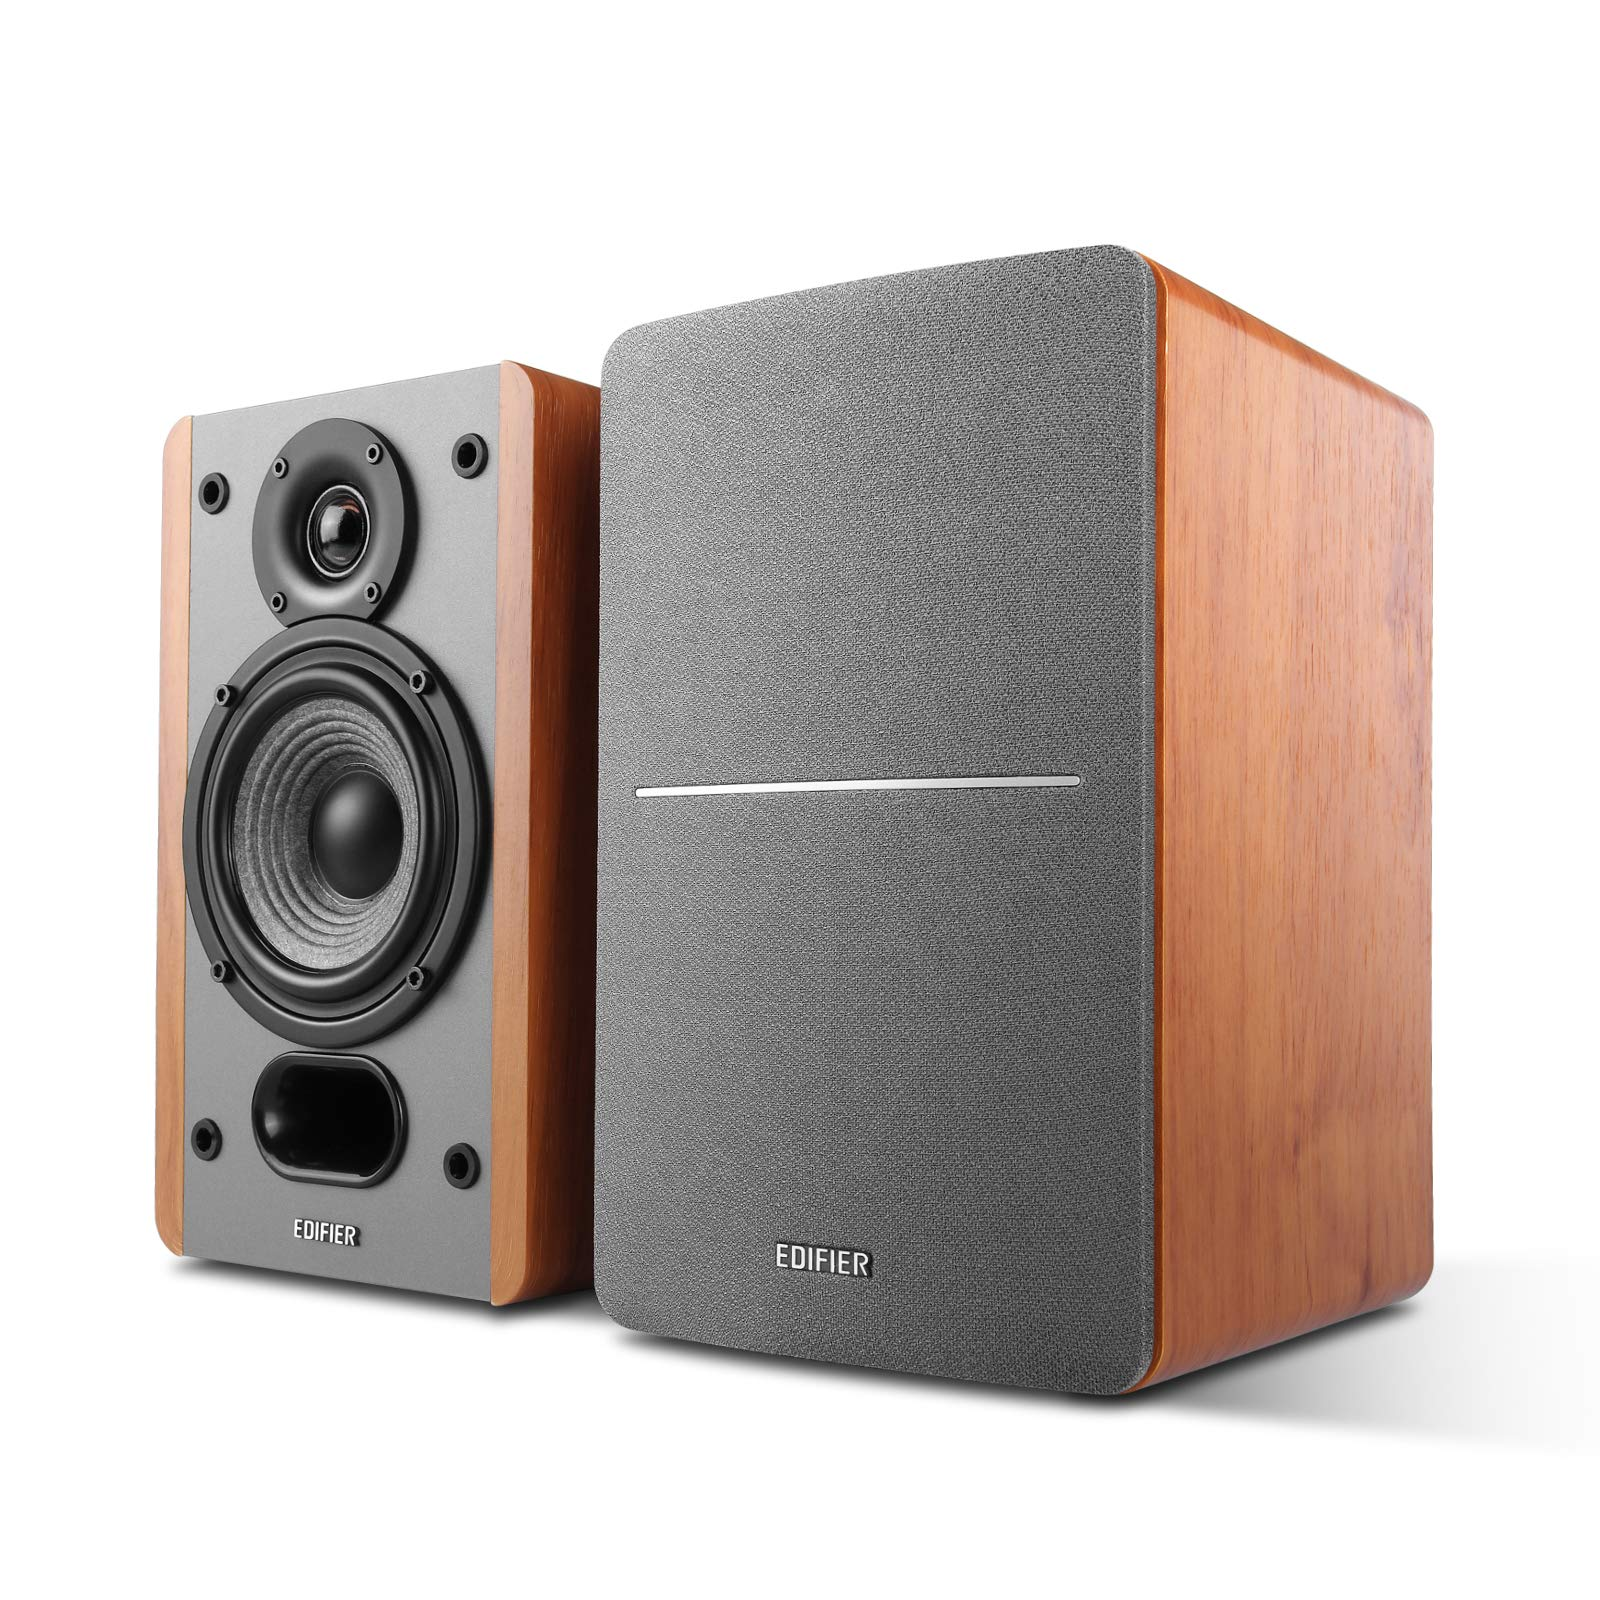 Parlante : Edifier P12 Passive Bookshelf Speakers - 2-way..